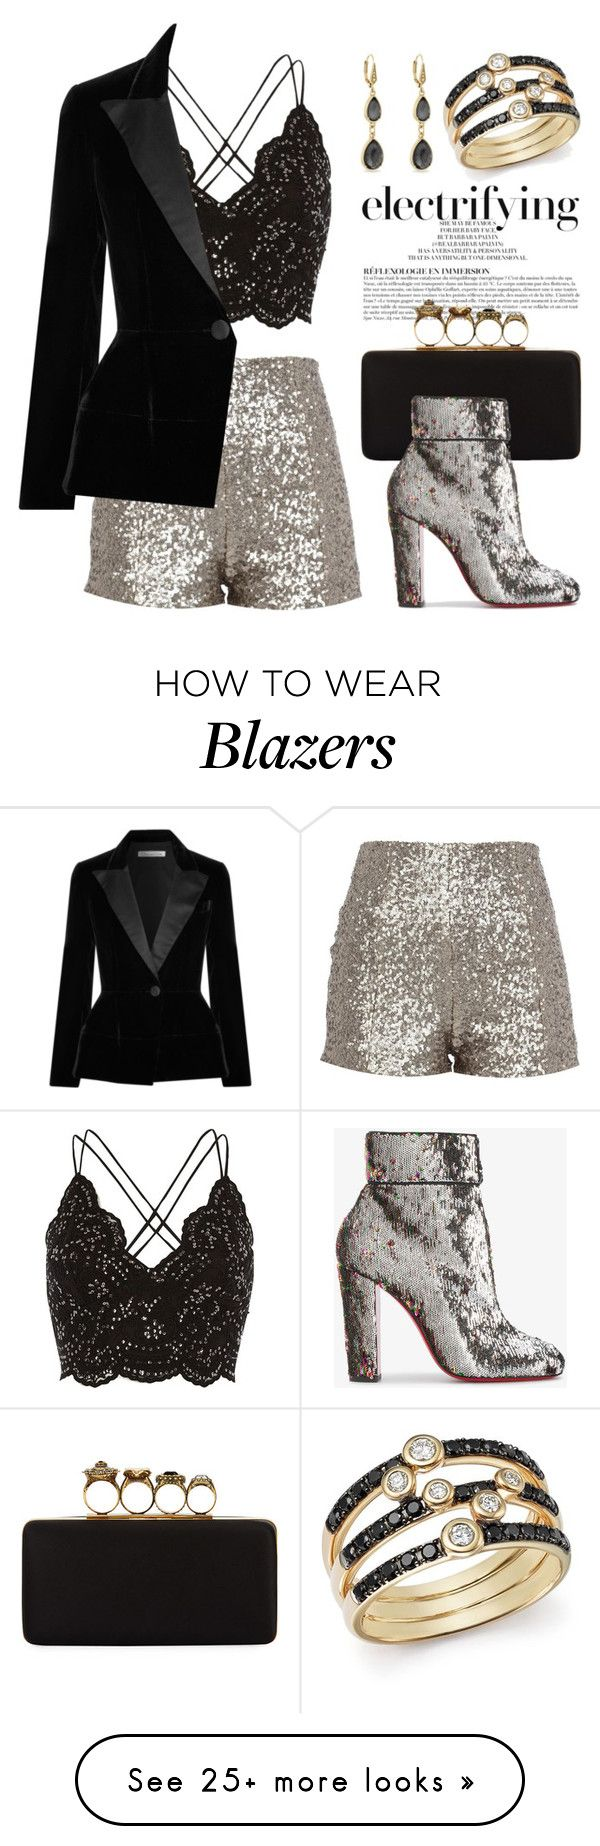 """Inspired by Sequins 4826"" by boxthoughts on Polyvore featuring River Island, Anja, Alexander McQueen, Christian Louboutin, Oscar de la Renta, Laundry by Shelli Segal and Bloomingdale's"